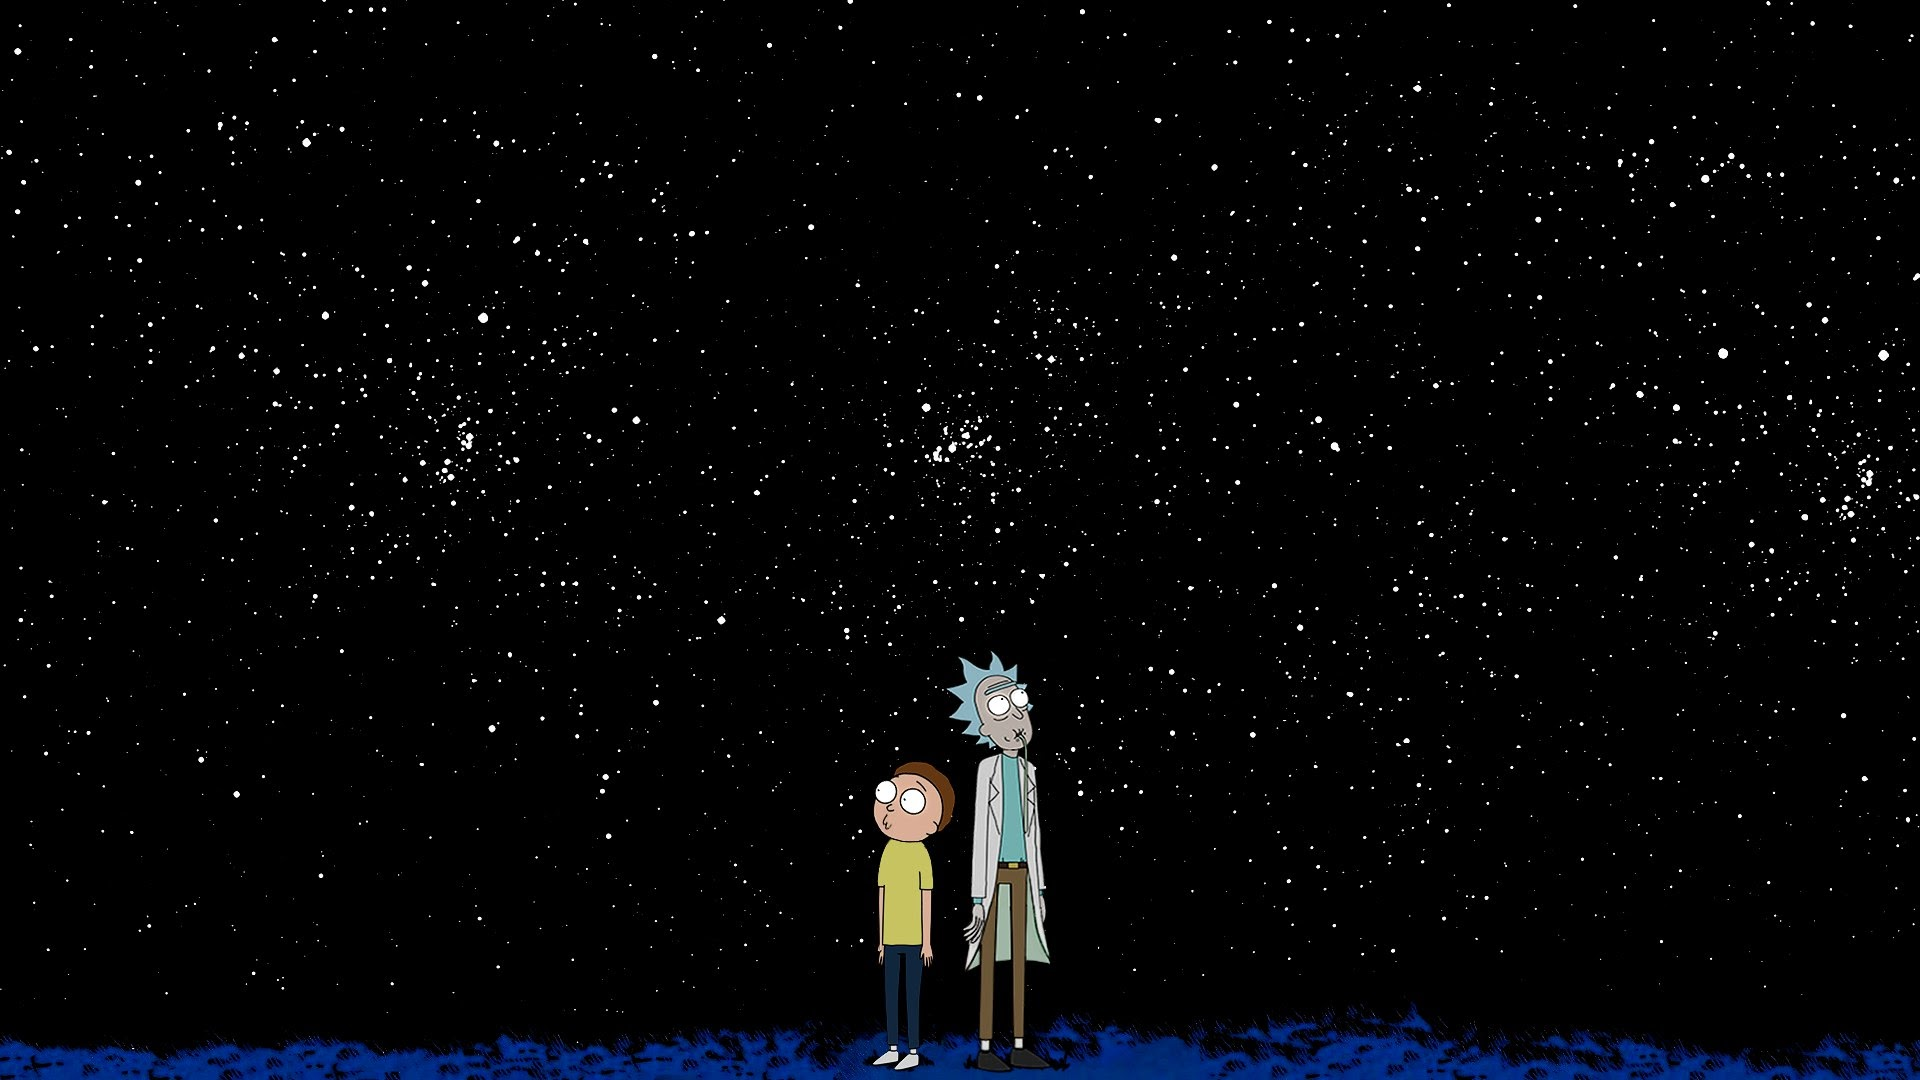 rick and morty hd hd tv shows 4k wallpapers images backgrounds